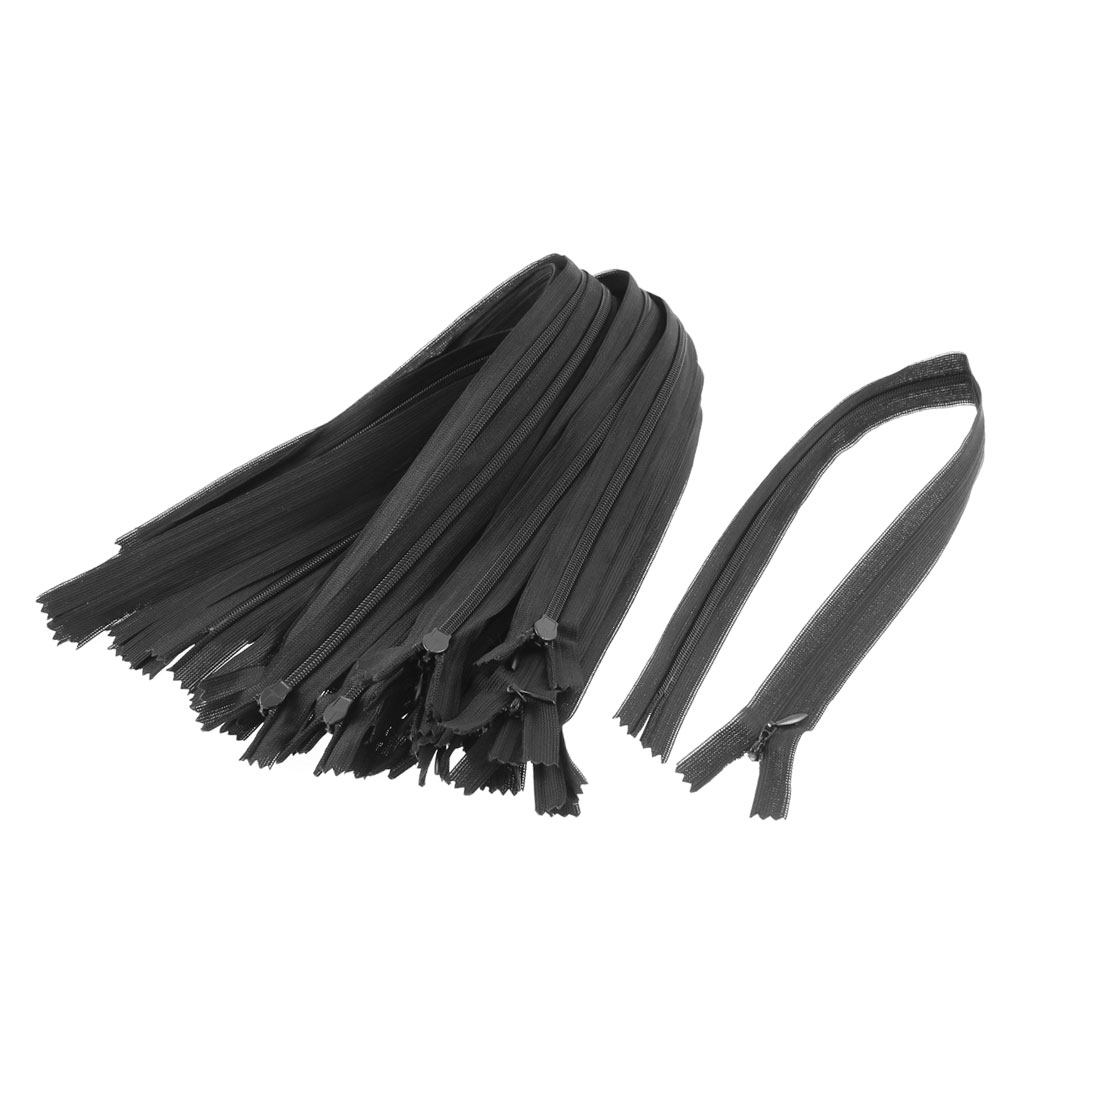 Dress Pants Closed End Nylon Zippers Tailor Sewing Craft Tool Black 40cm 20 Pcs